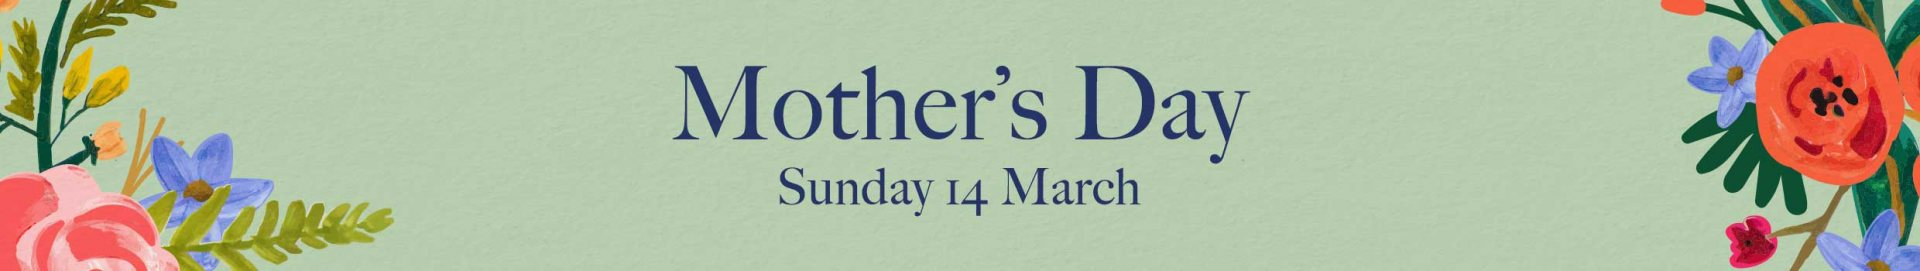 Mother's Day Gifts at Waterstones